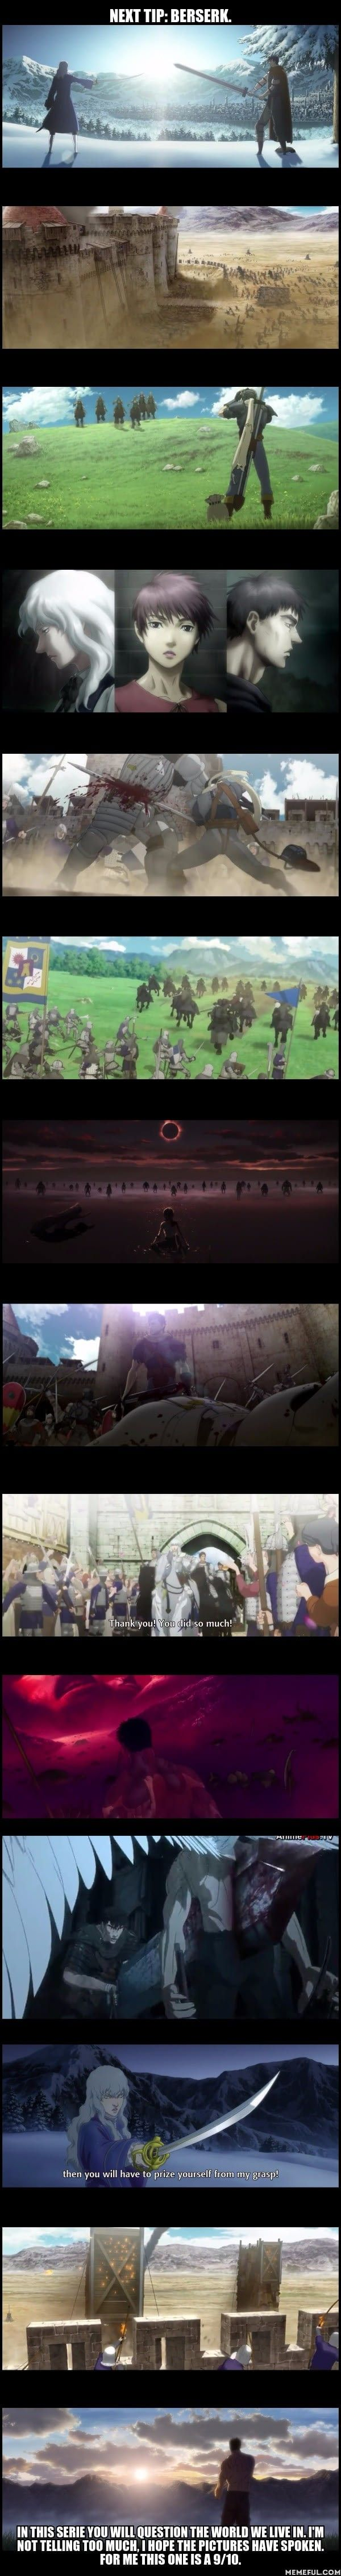 Next anime tip: Berserk! Go watch it it wont disappoint you. Other anime posts like this on my page! (SC: Golden arc movies mostly)